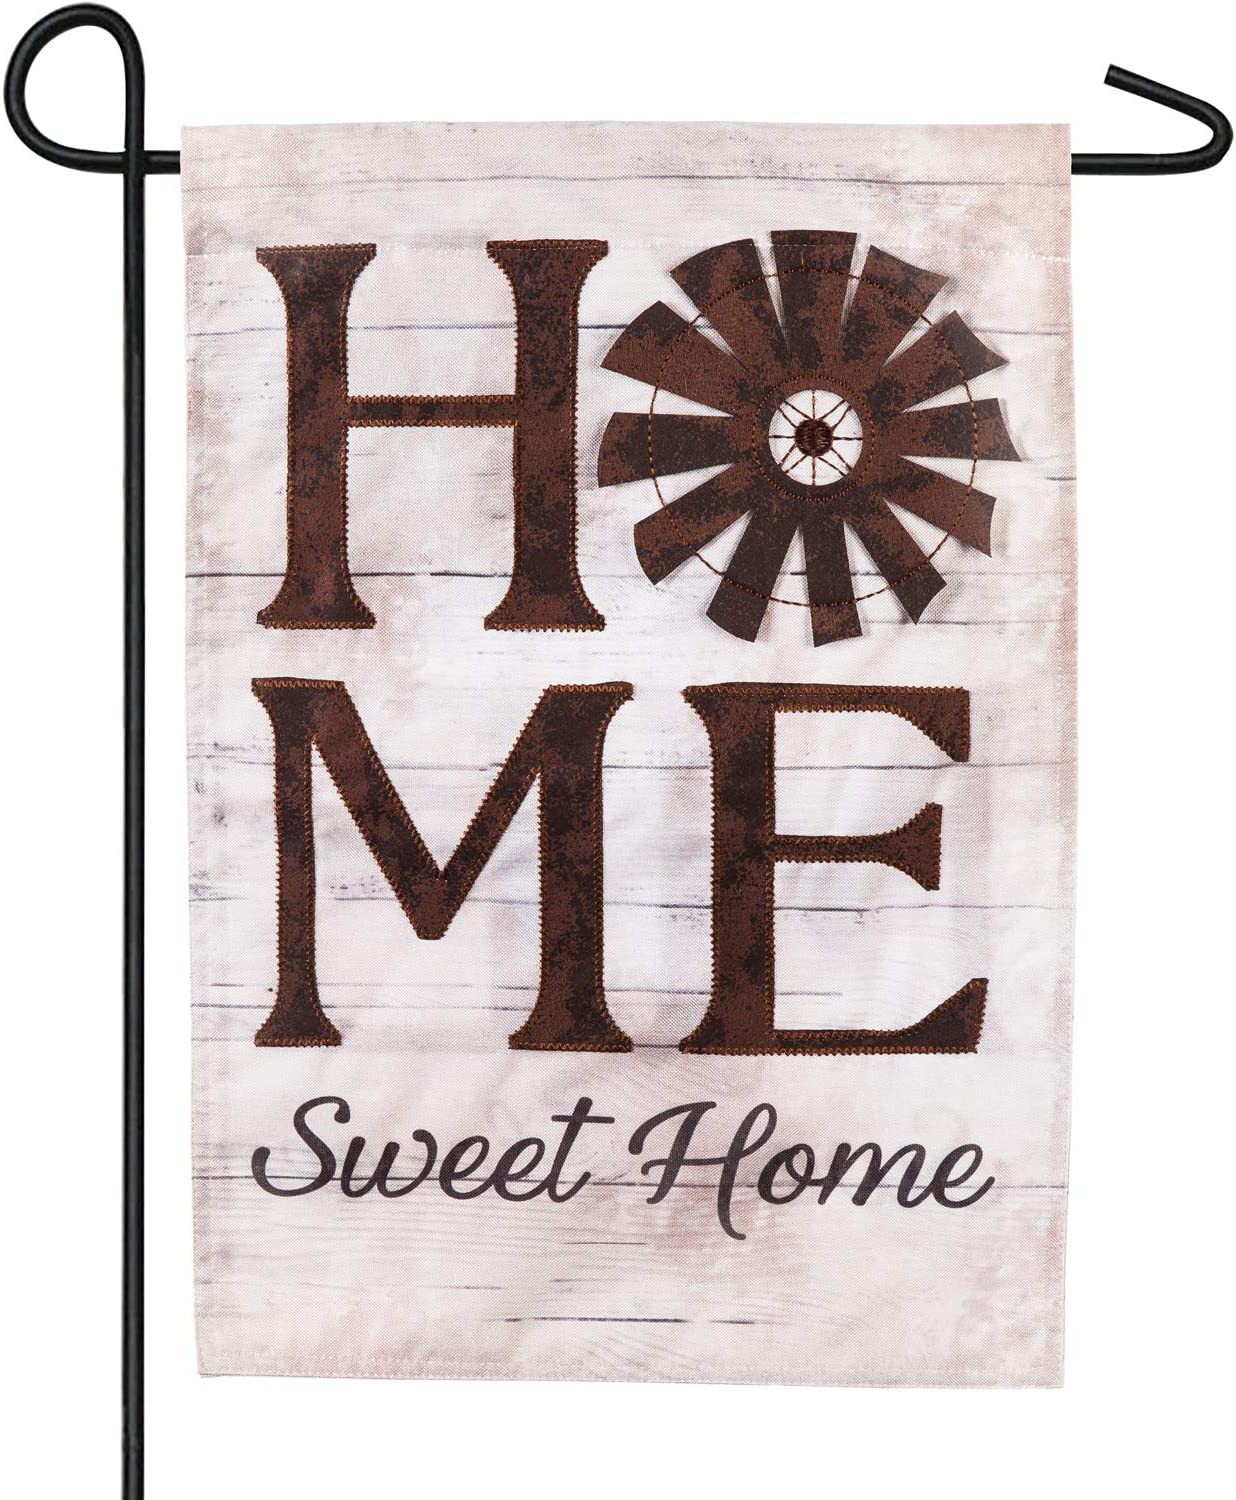 Evergreen Flag Windmill Home Sweet Home Linen Garden Flag - 12.5 x 18 Inches Outdoor Decor for Homes and Gardens